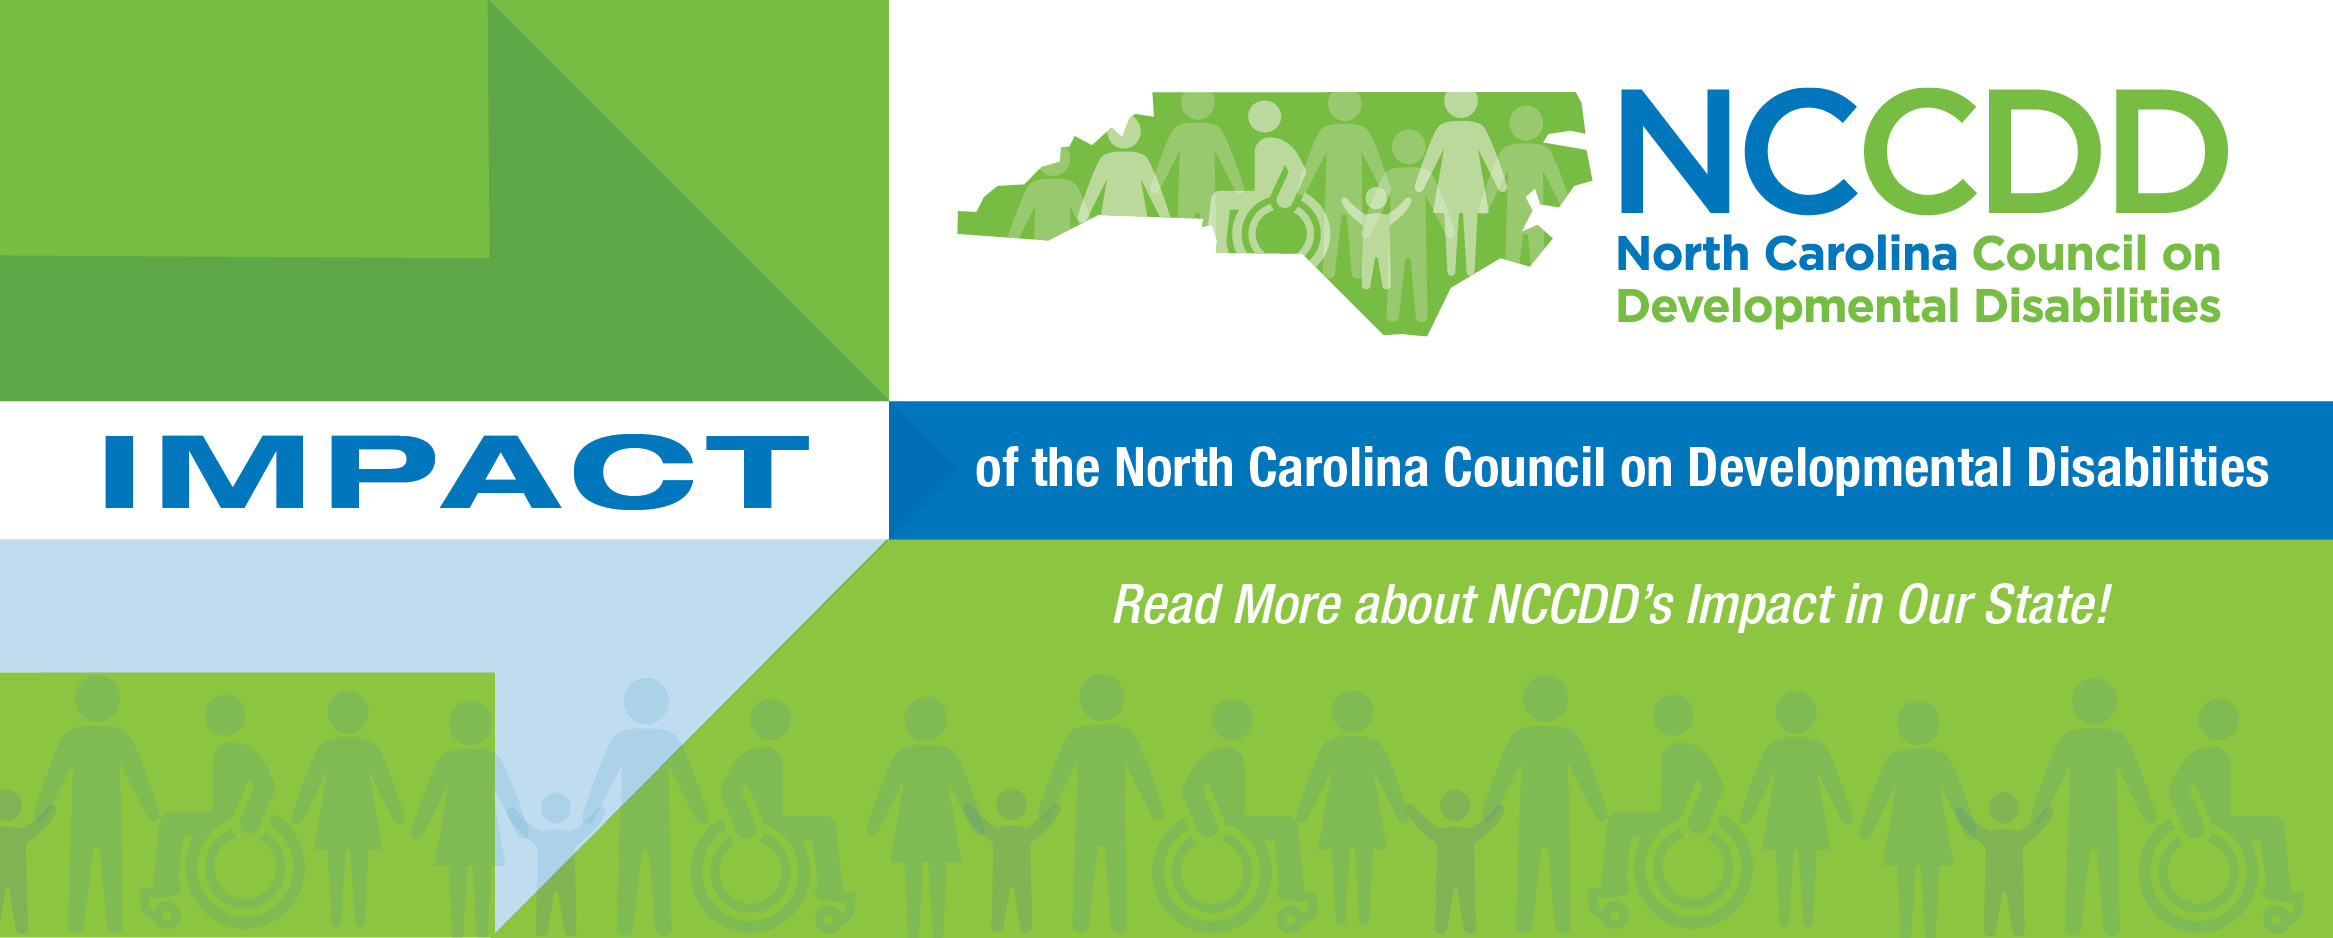 SPECIAL ALERT: The NCCDD office is temporarily closed due to Hurricane Matthew. Our building is without power and phones.  However, we can still receive e-mails!  If you have an immediate need, please e-mail info@nccdd.org and we will respond.